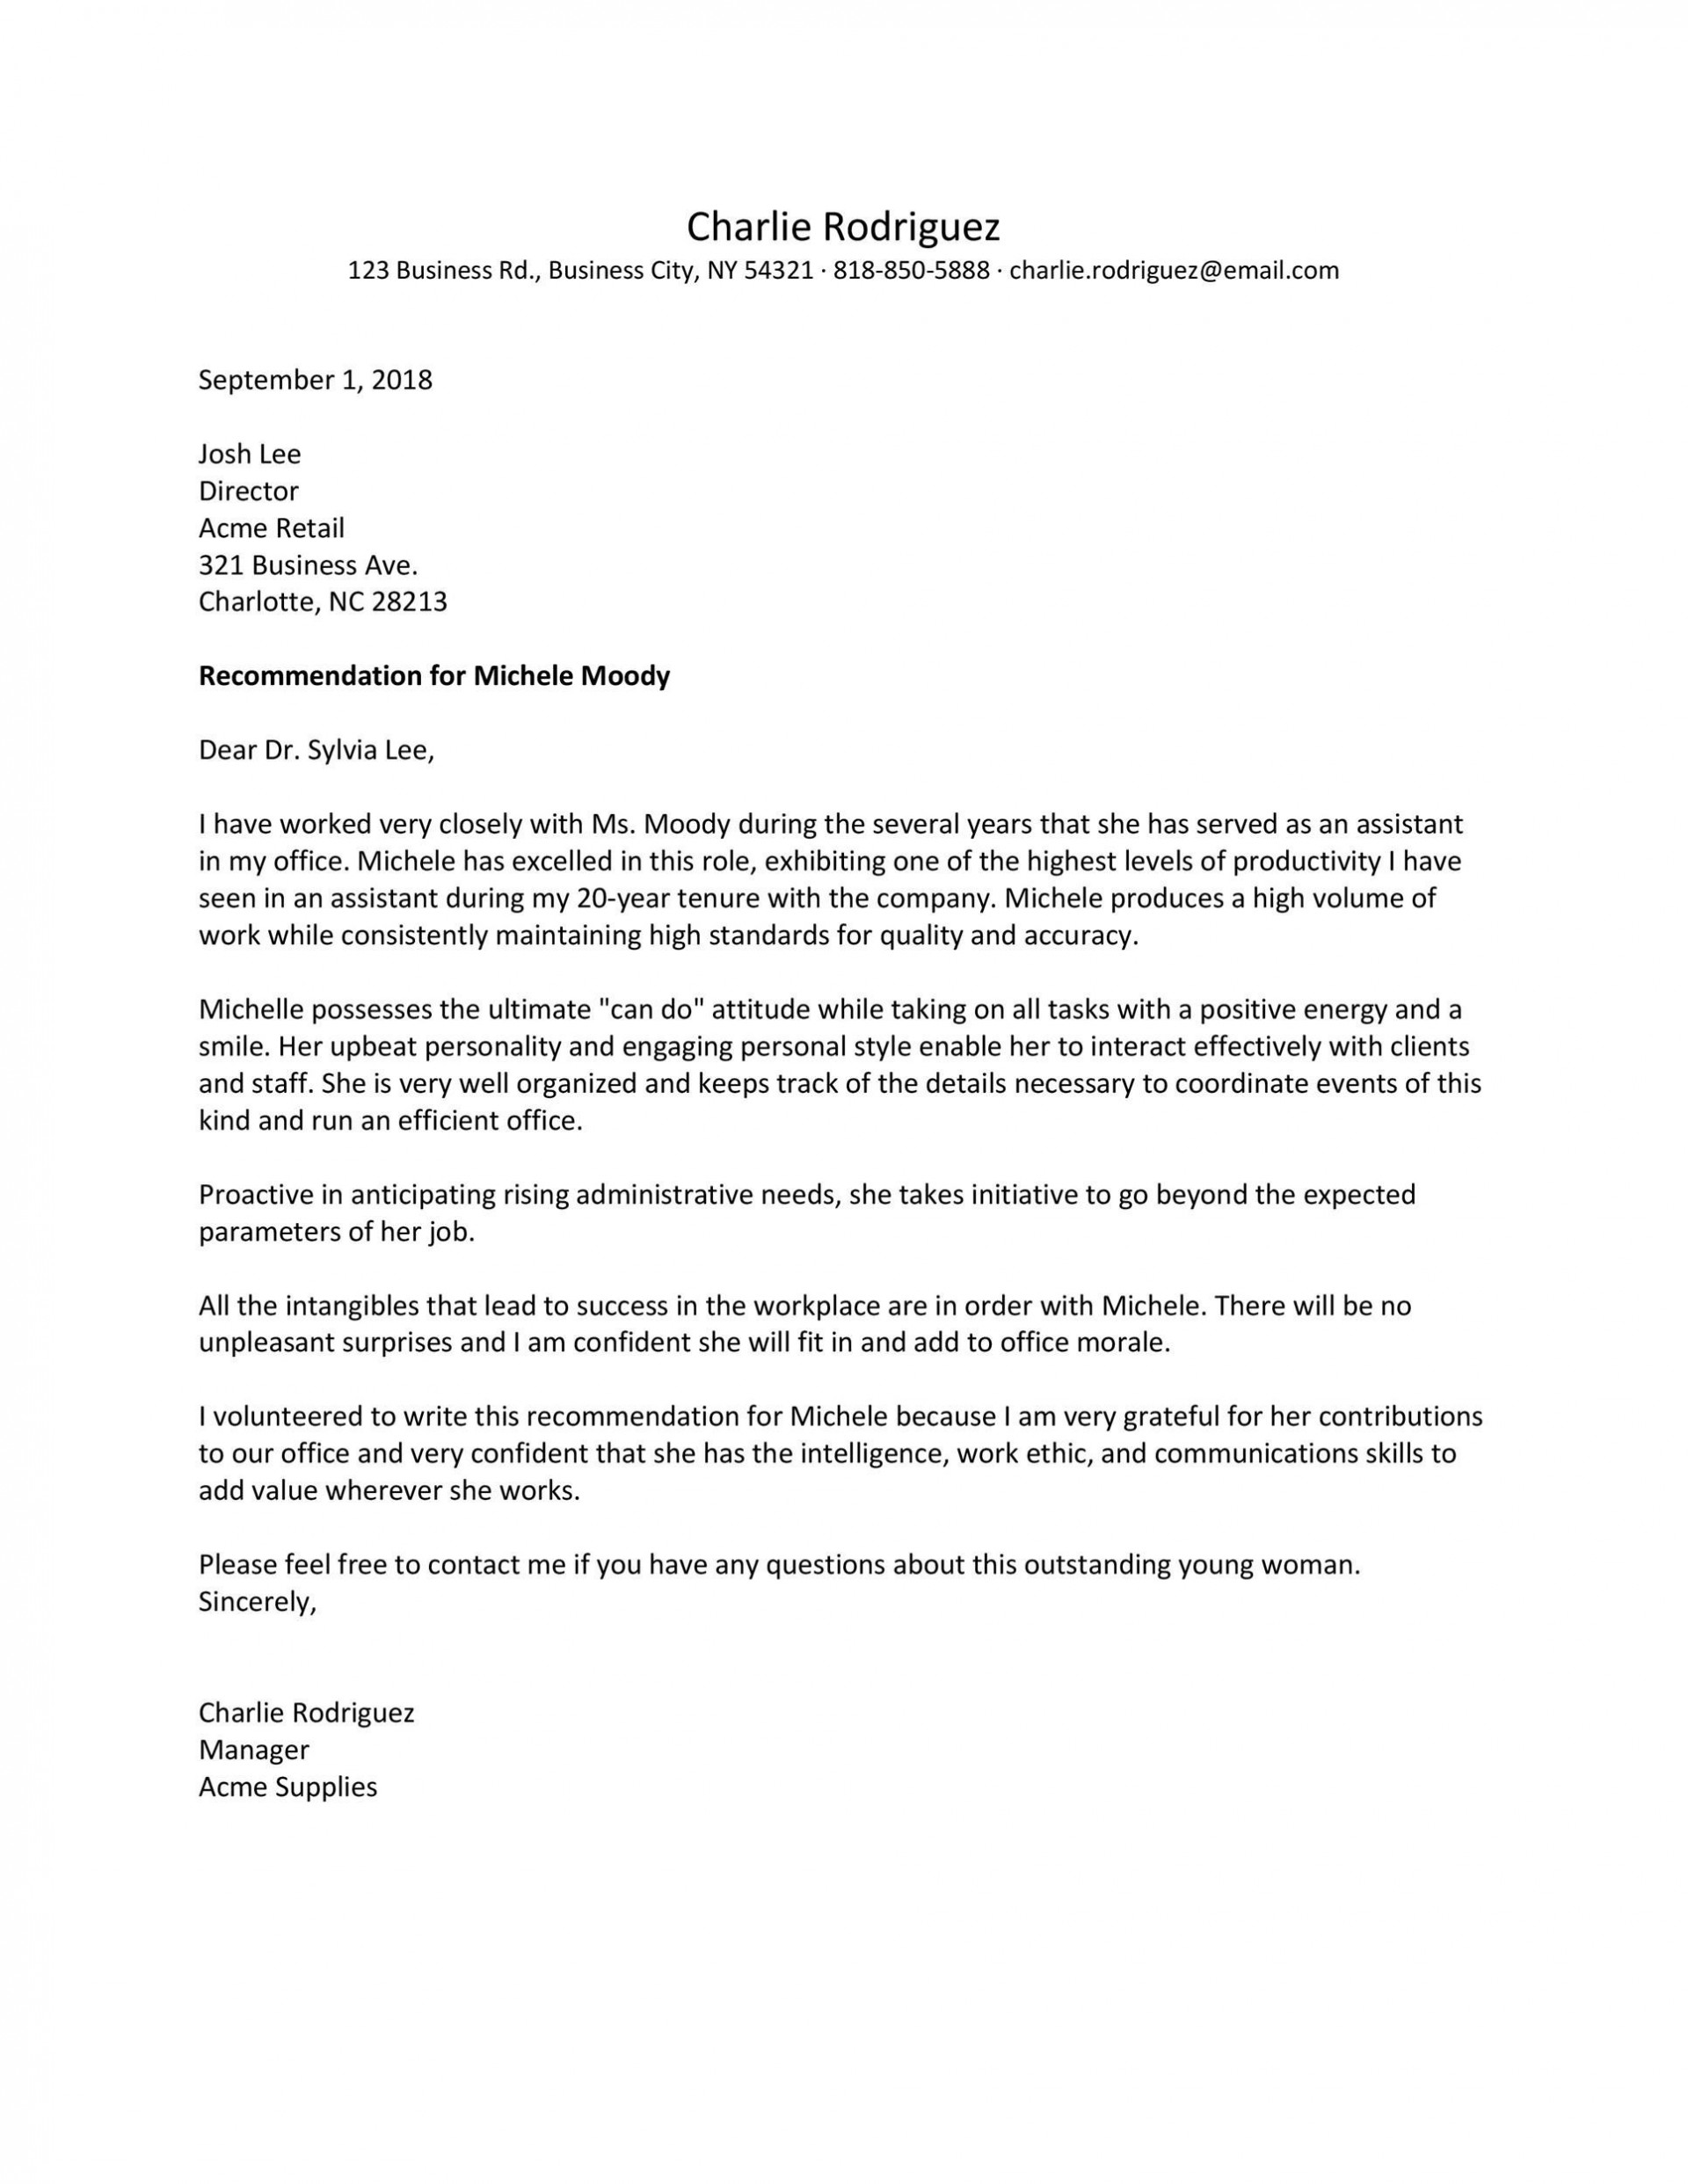 008 Staggering Letter Of Recommendation Template Inspiration  For Teacher Student From Coach Word1920